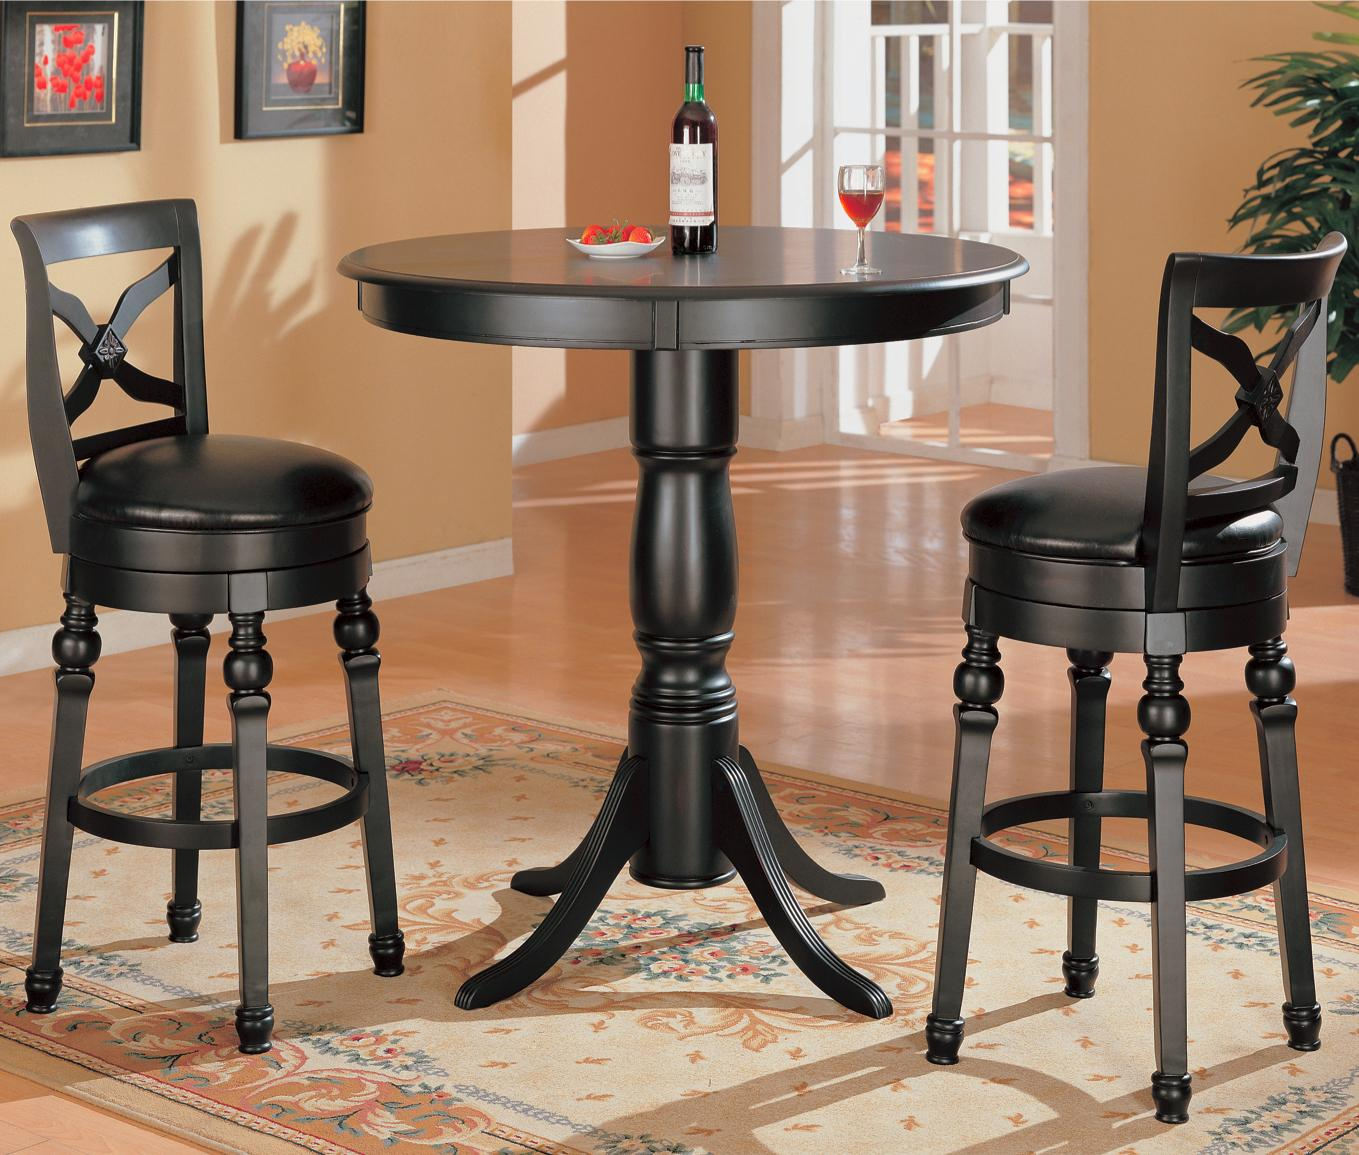 Coaster #100278 Lathrop Black Bar Height Table and Stools